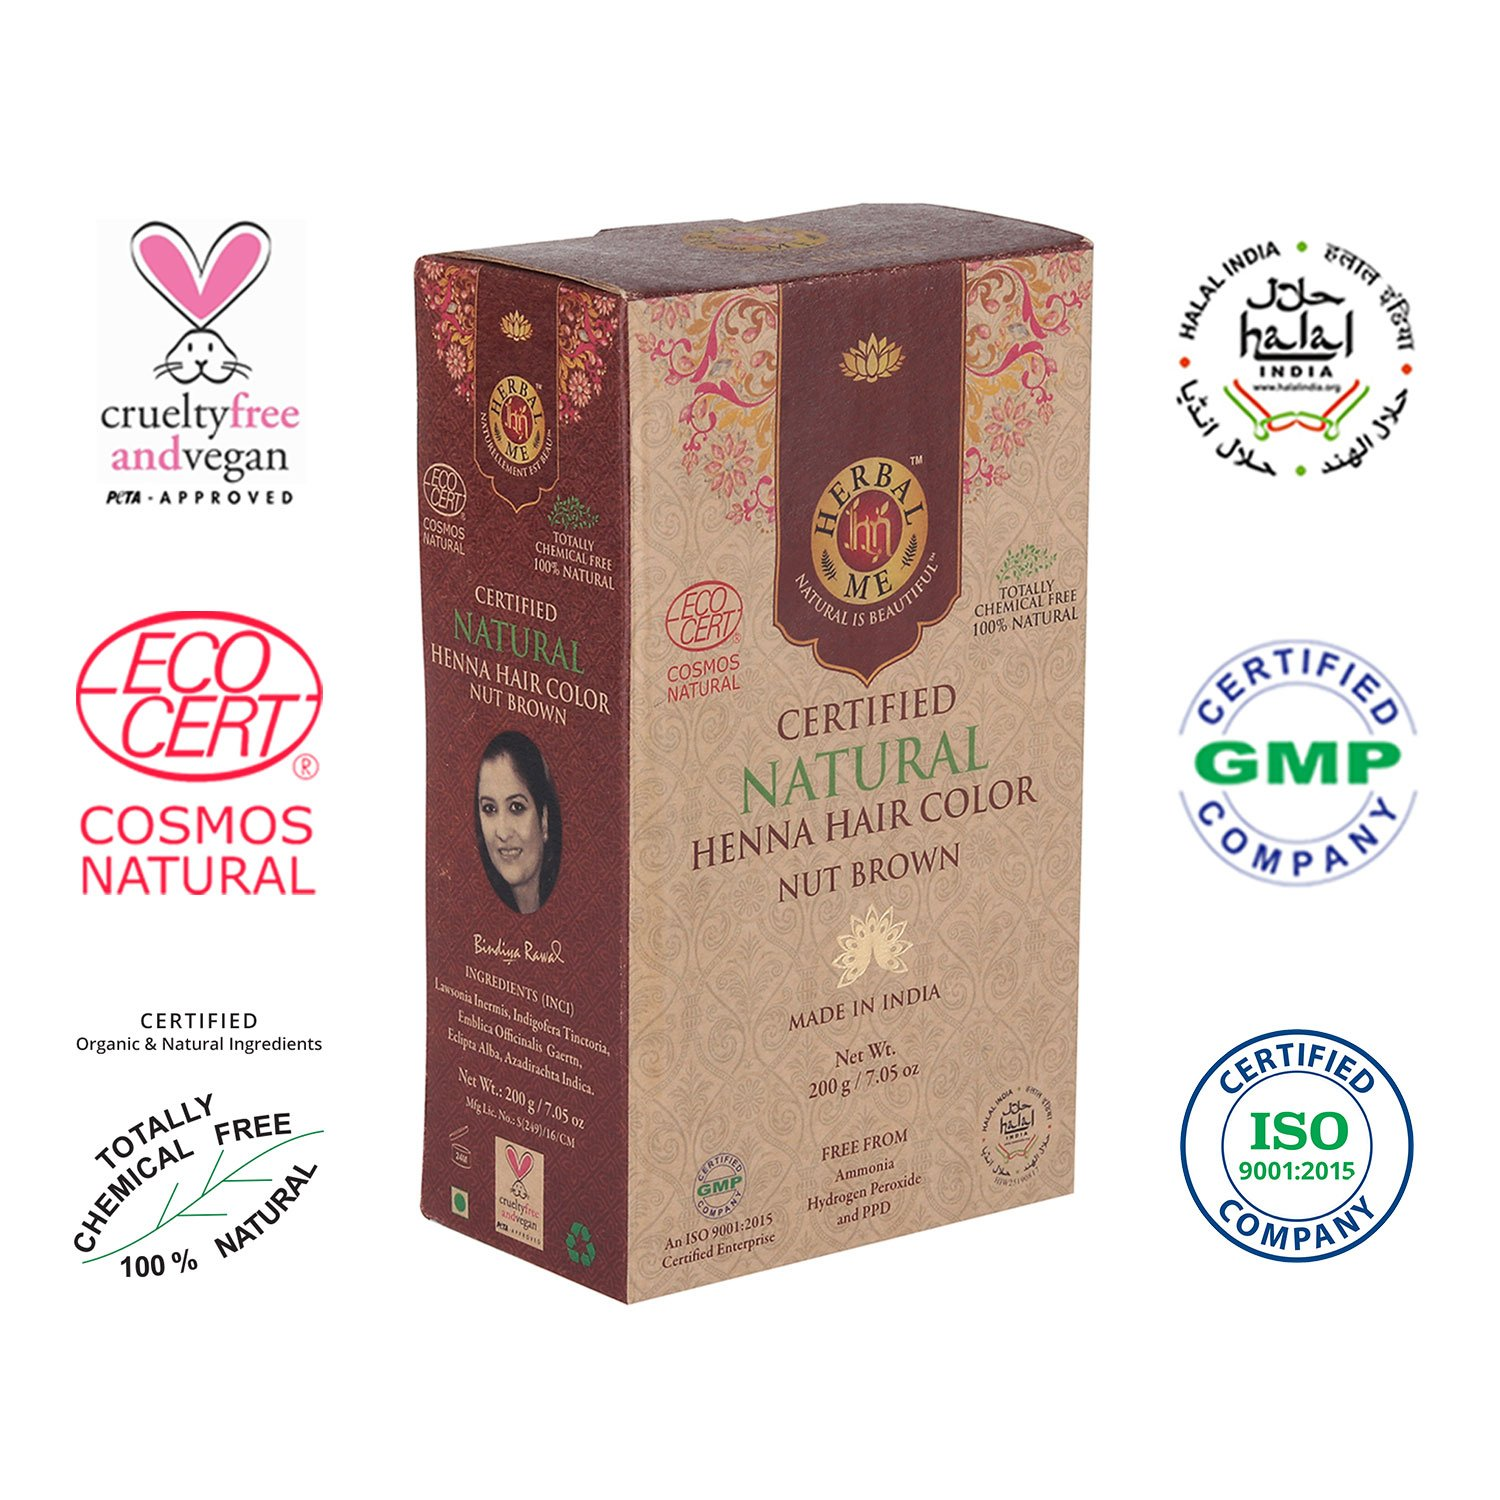 Herbal Me - Nut Brown Henna Hair Color 7.05 oz,CERTIFIED 100% Natural by Ecocert (France).VEGAN & HALAL approved, Zero chemicals by HERBAL ME